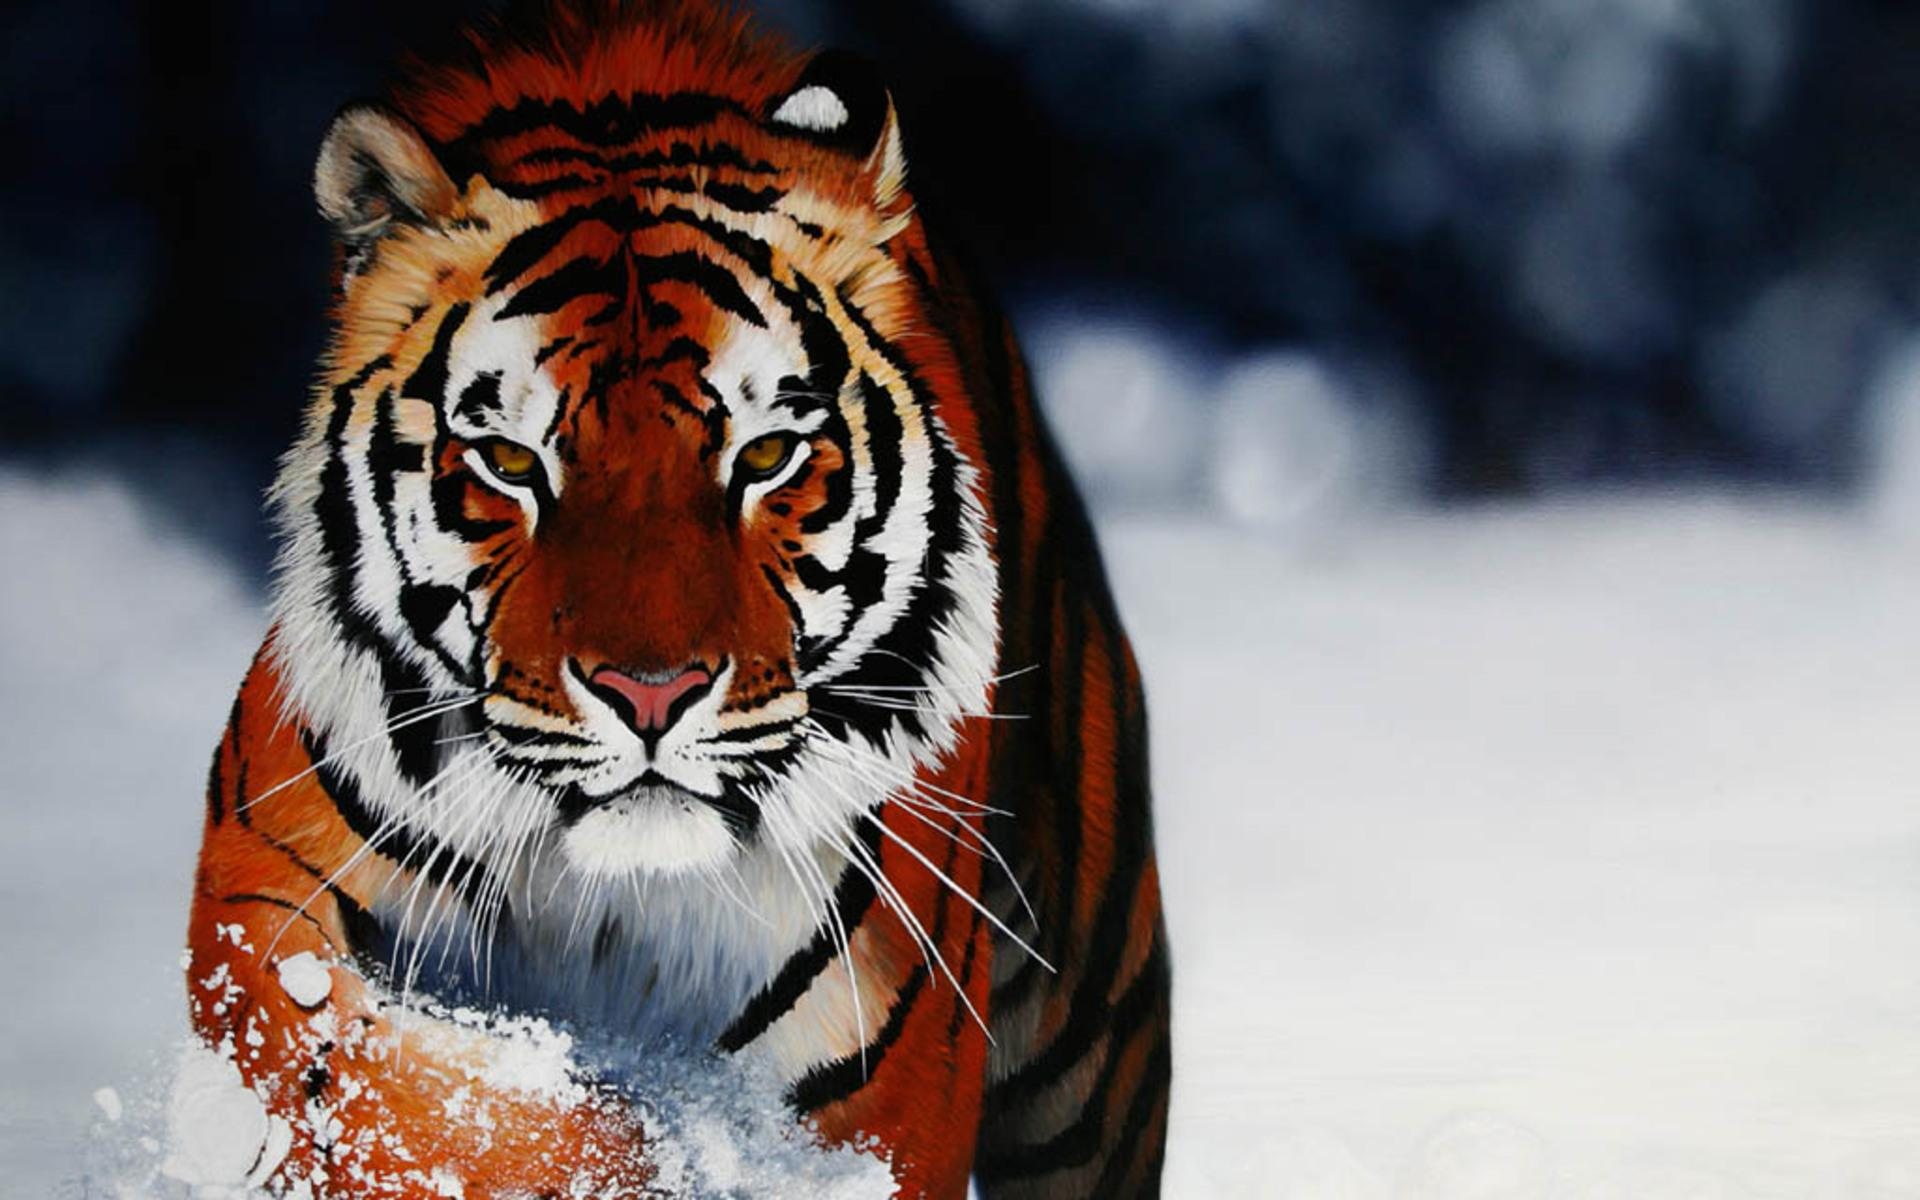 Tiger In Snow Wallpaper | 1920x1200 | ID:36472 - WallpaperVortex.com